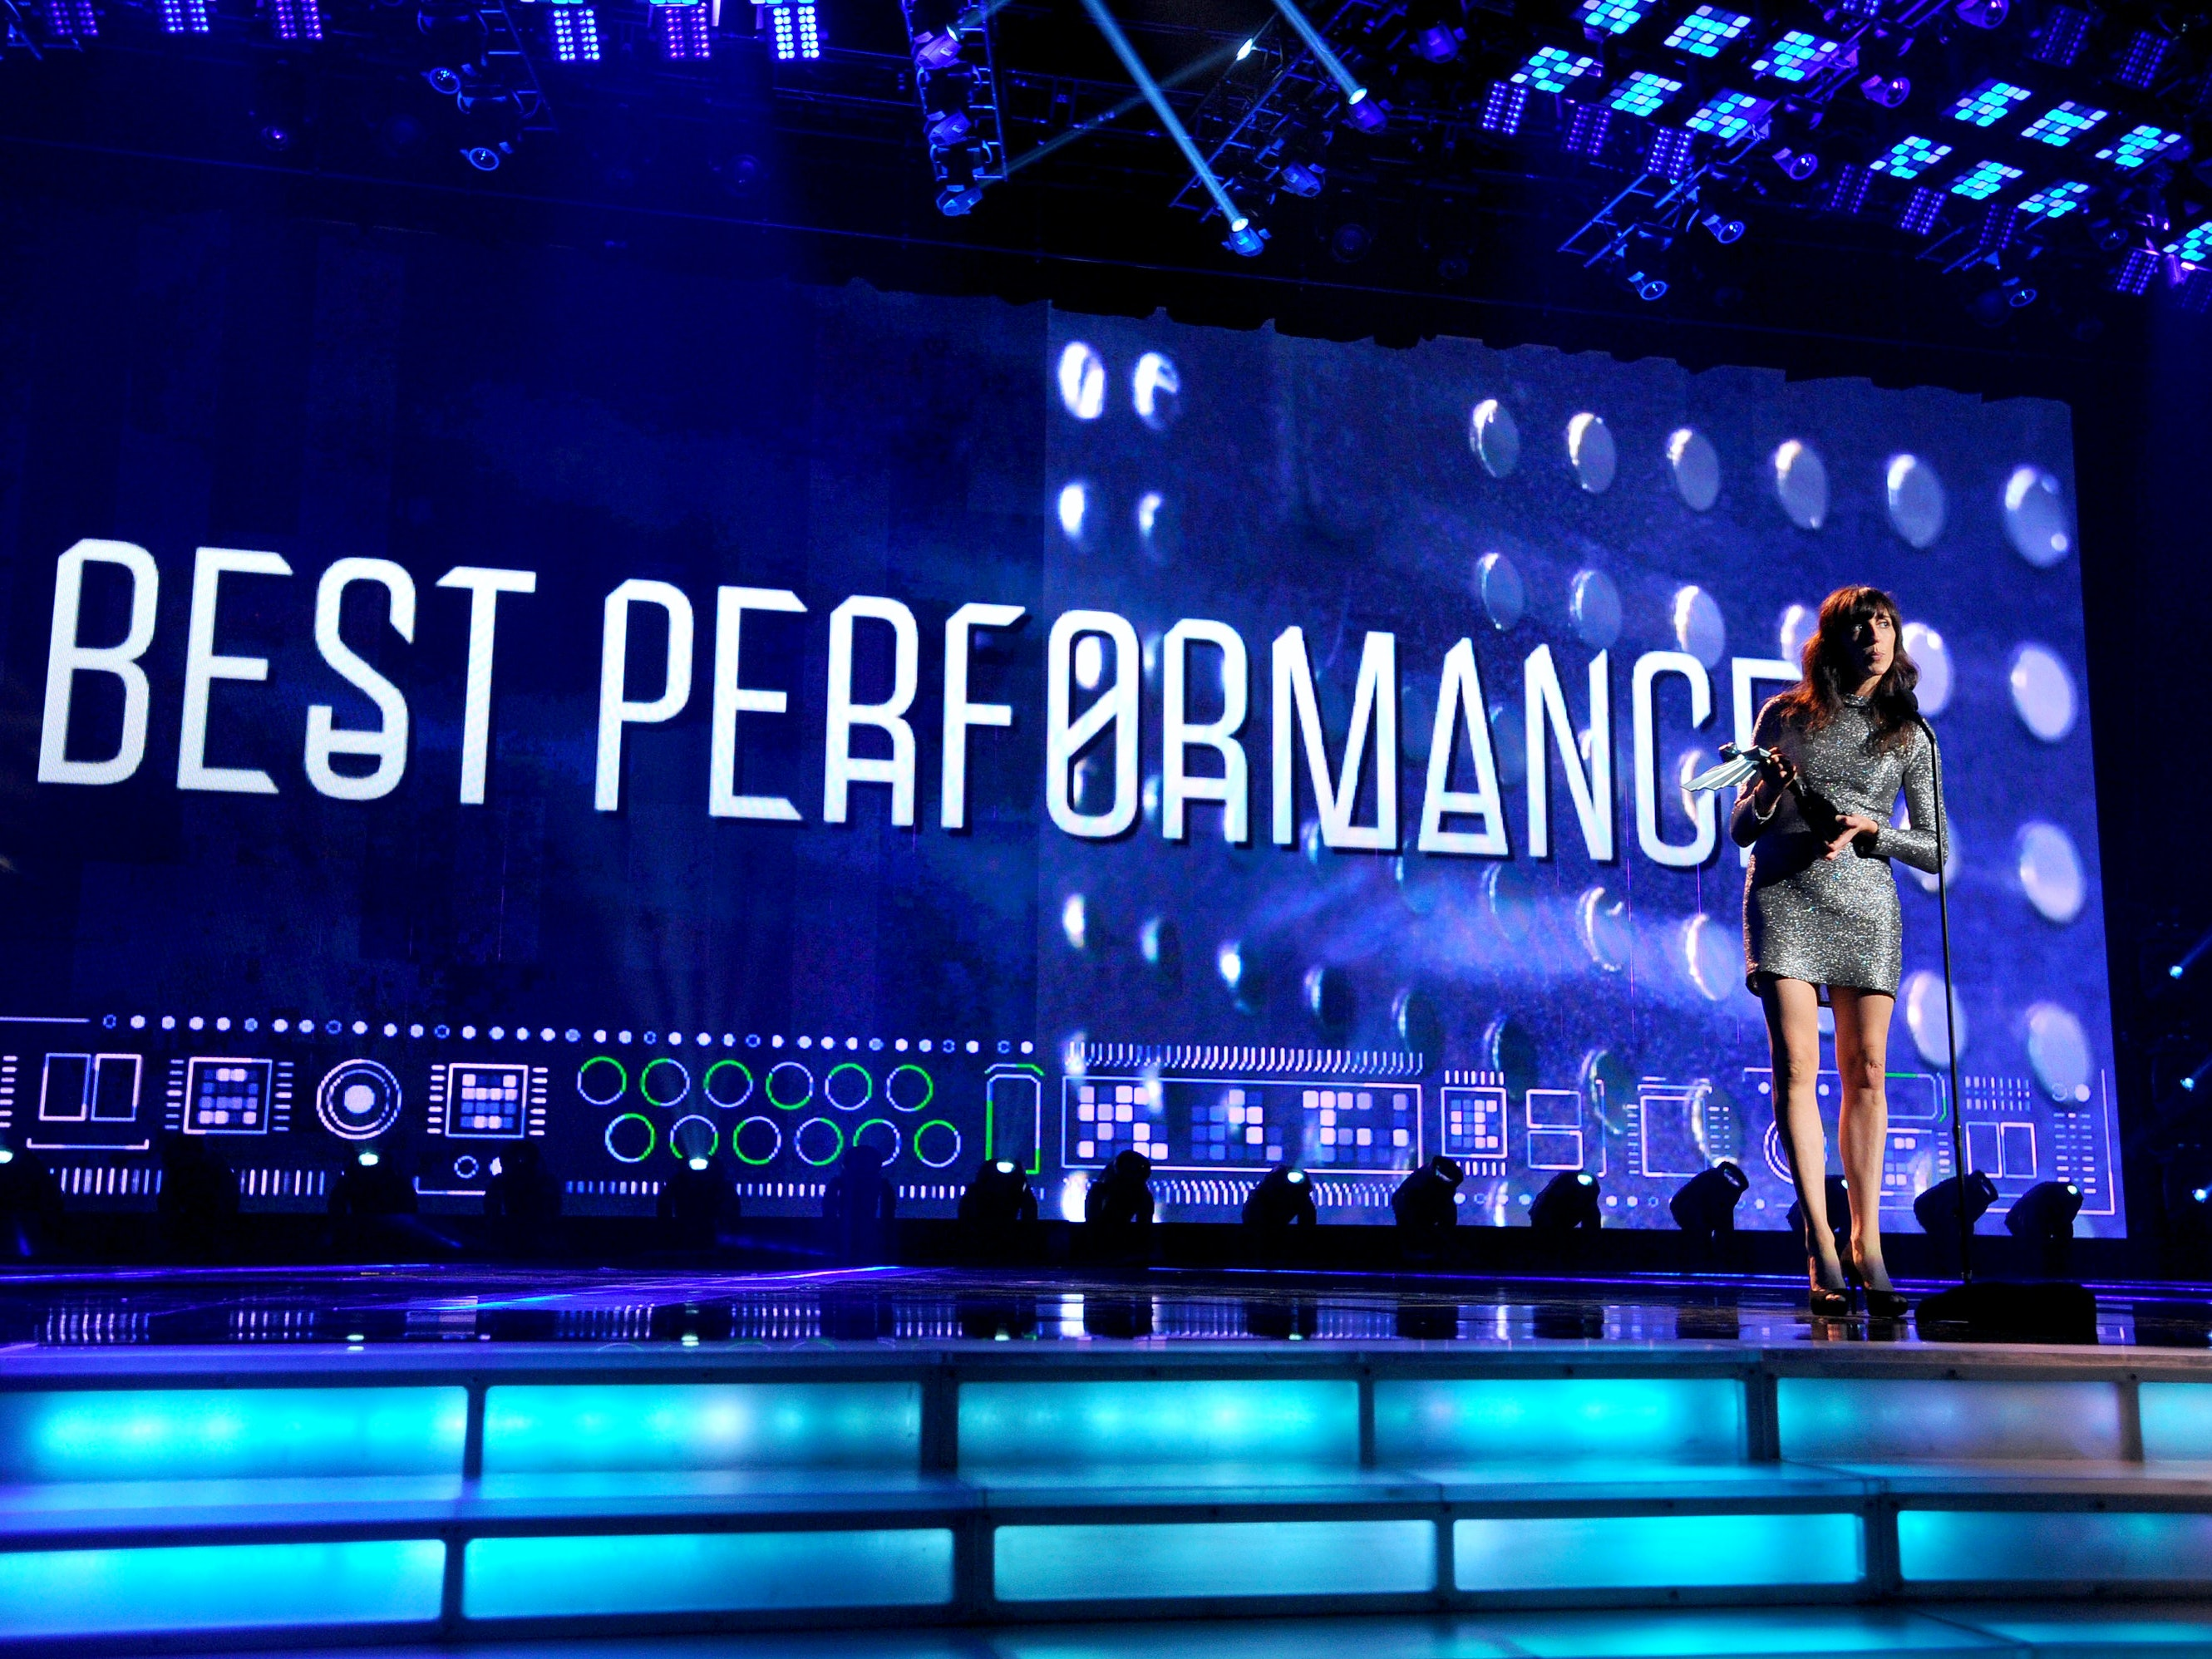 Viva Seifert delivers an acceptance speech for her award for Best Performance (for 'Her Story') at last year's Game Awards.